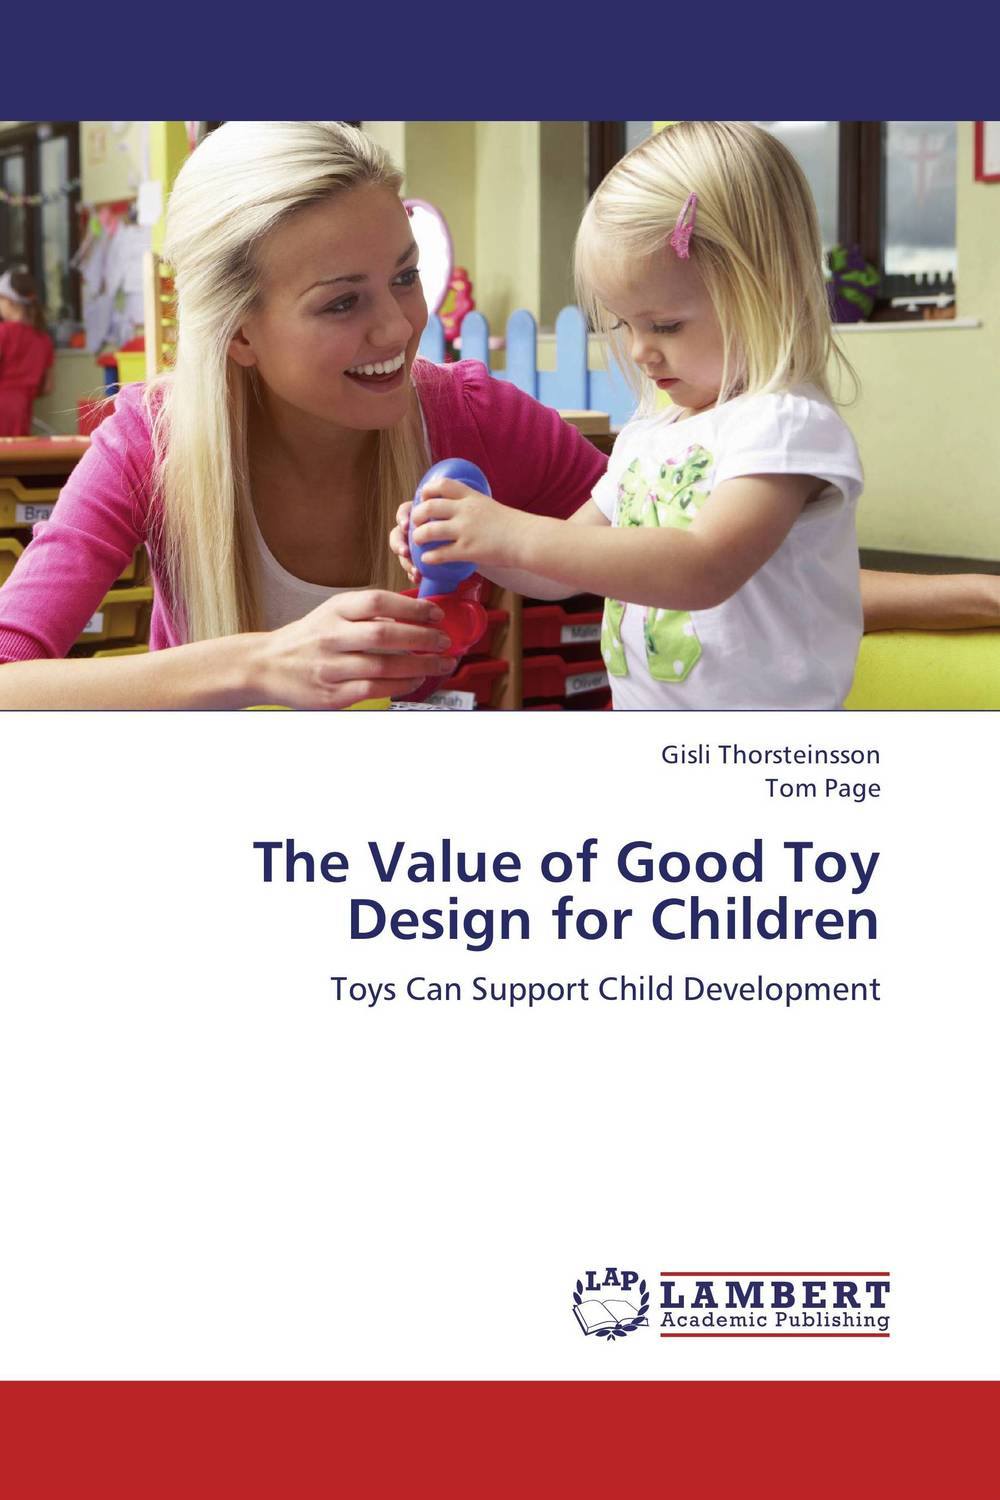 The Value of Good Toy Design for Children the role of evaluation as a mechanism for advancing principal practice